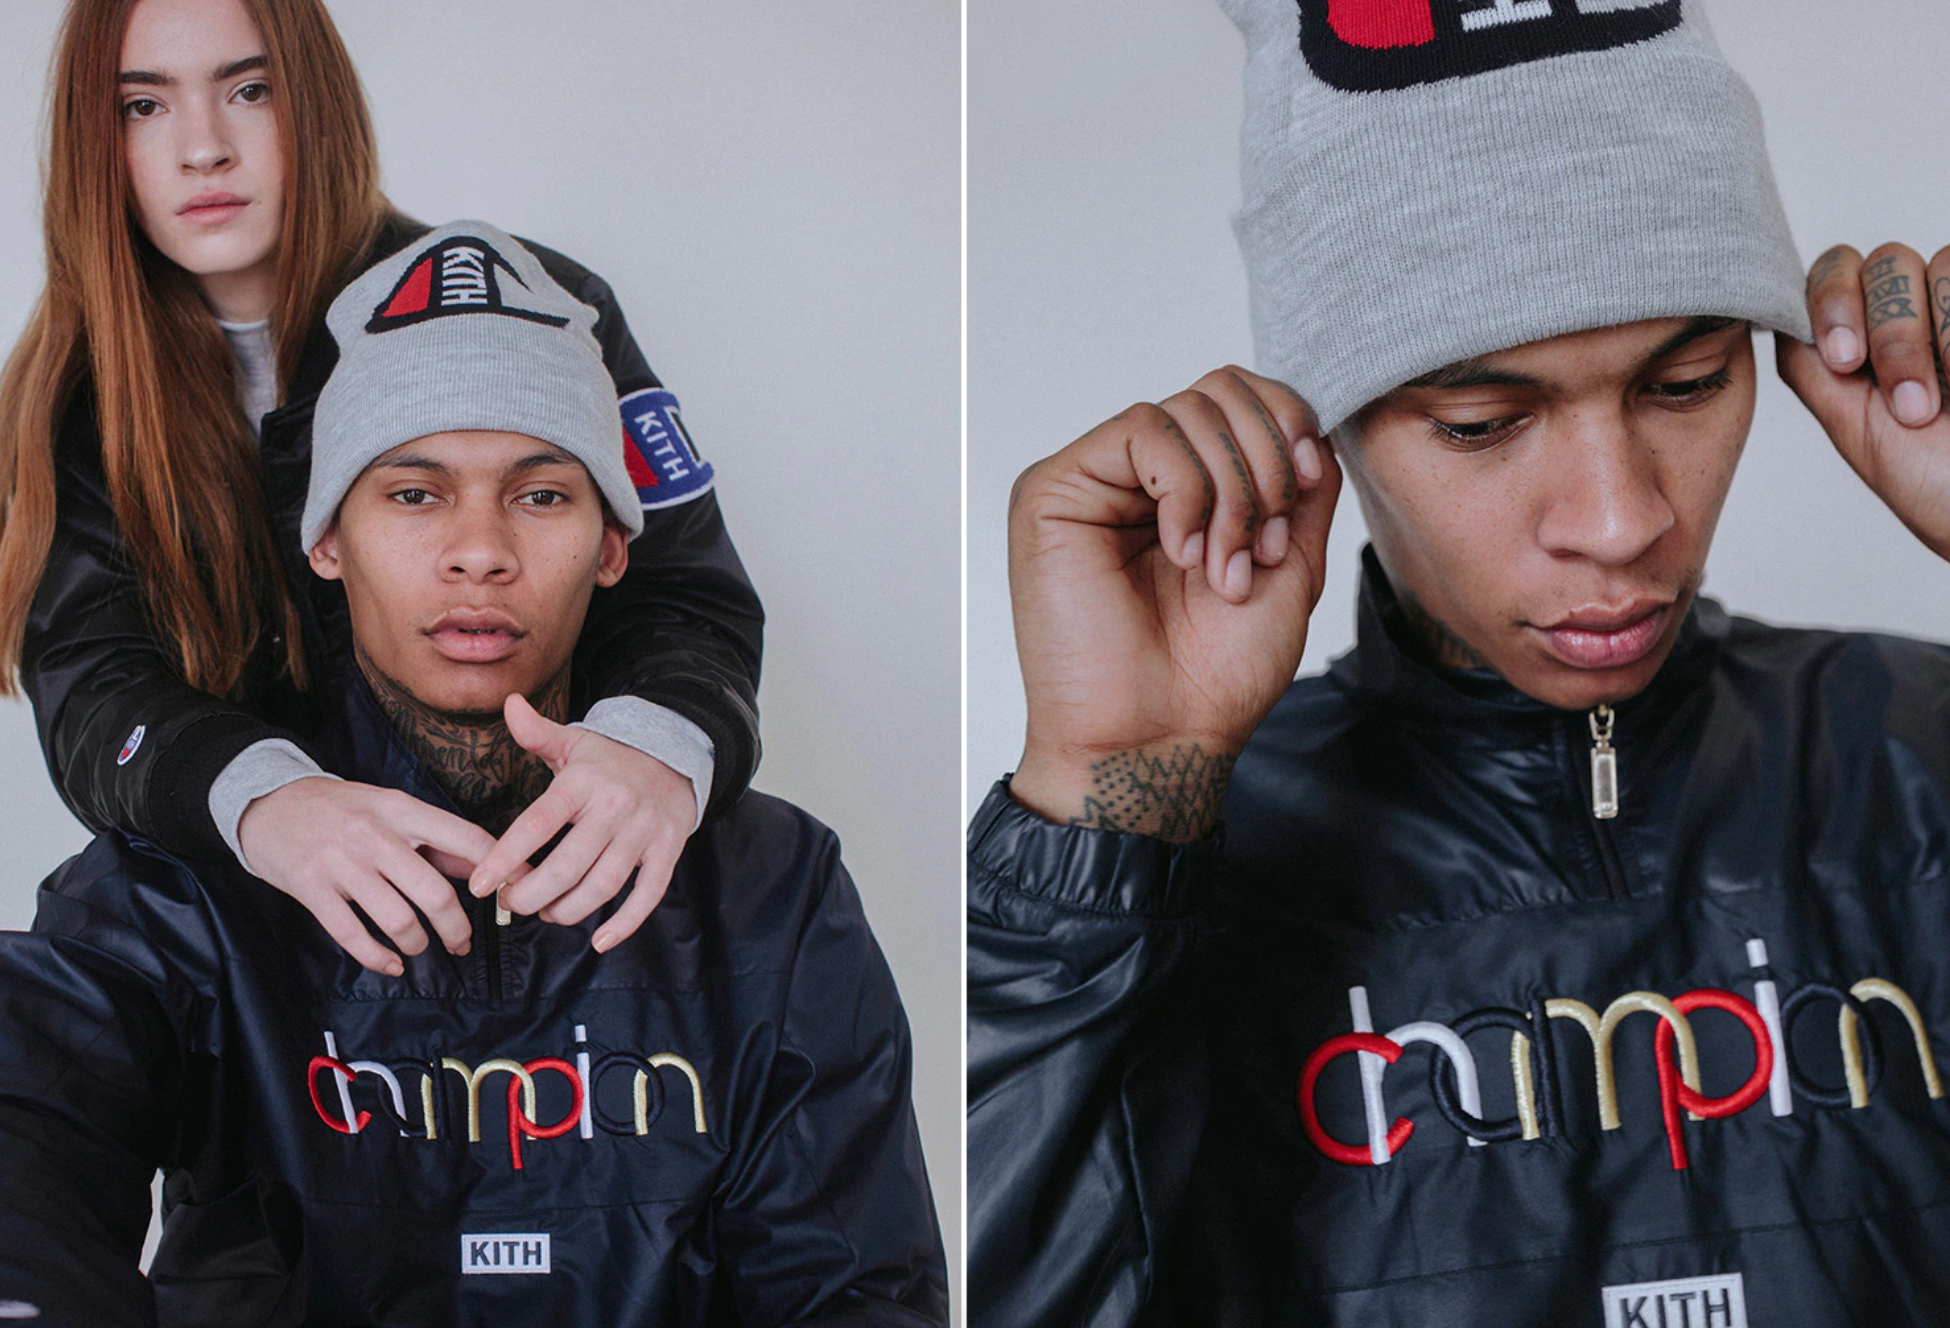 Kith x Champion Collab For New Collection